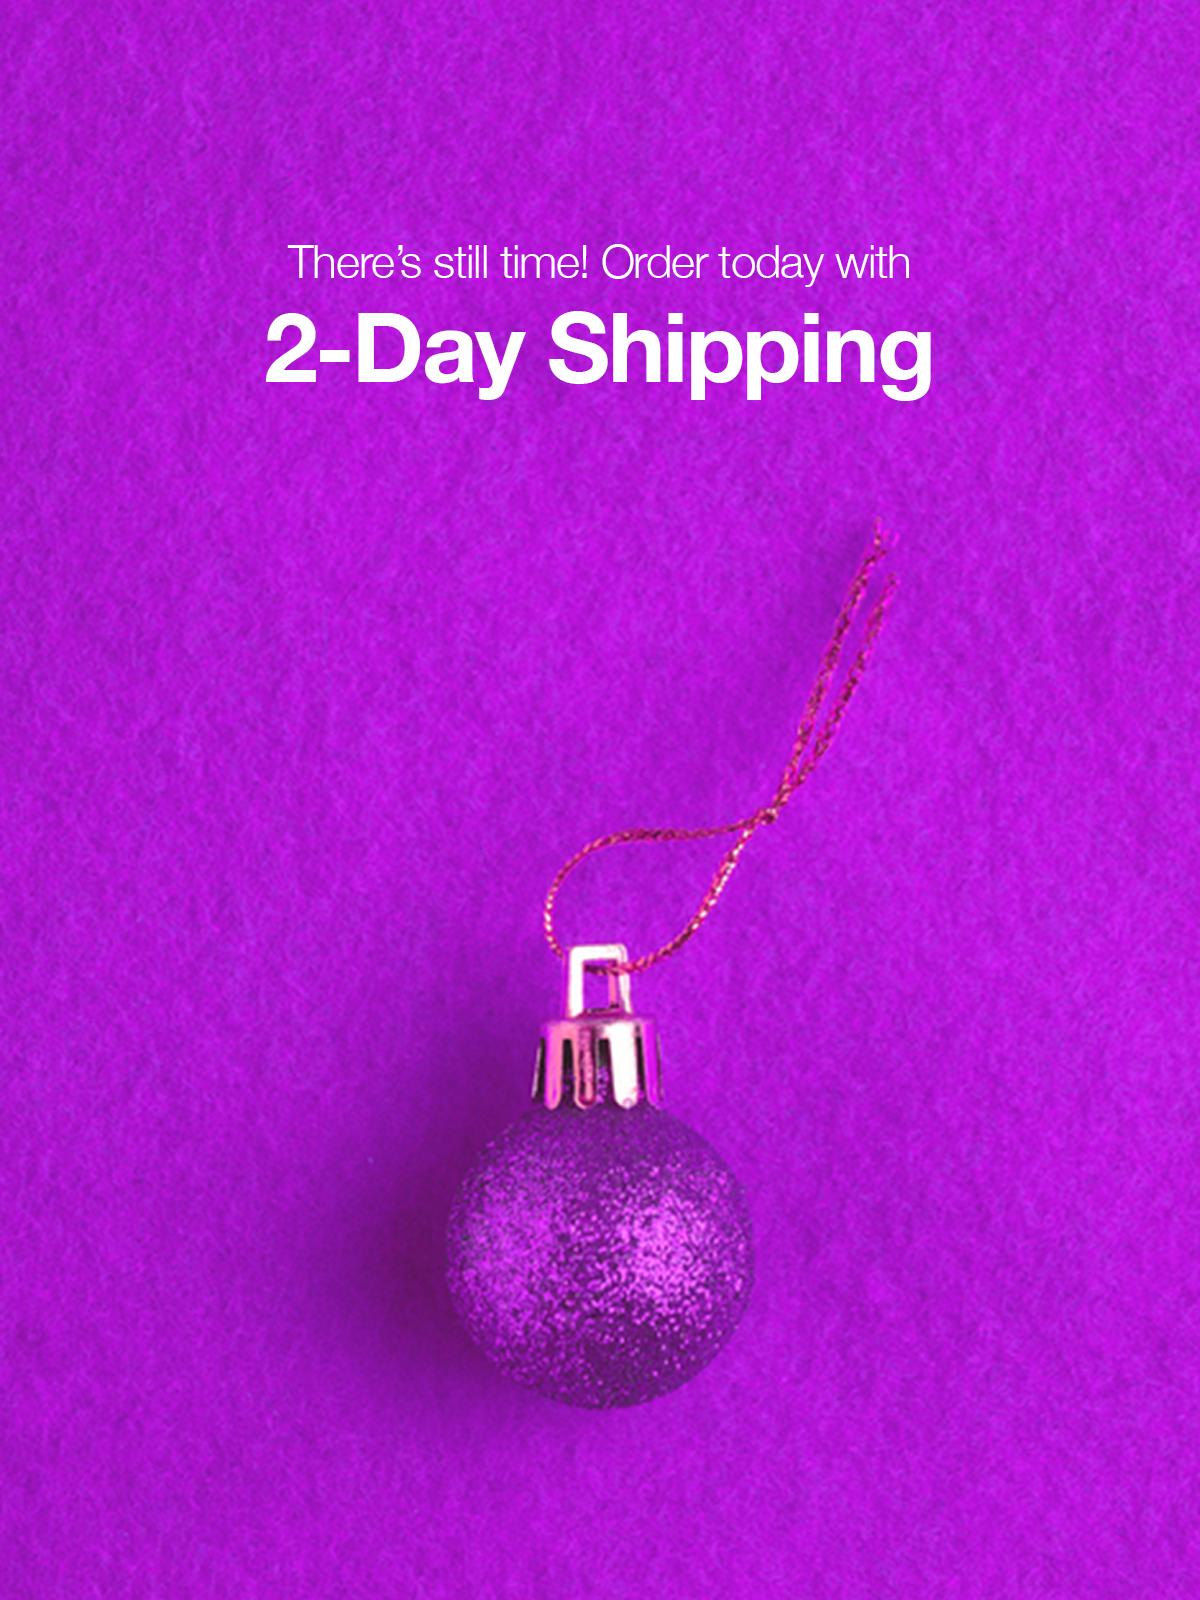 2-Day Shipping Cutoff - Snaps: A Blog from SnapBox